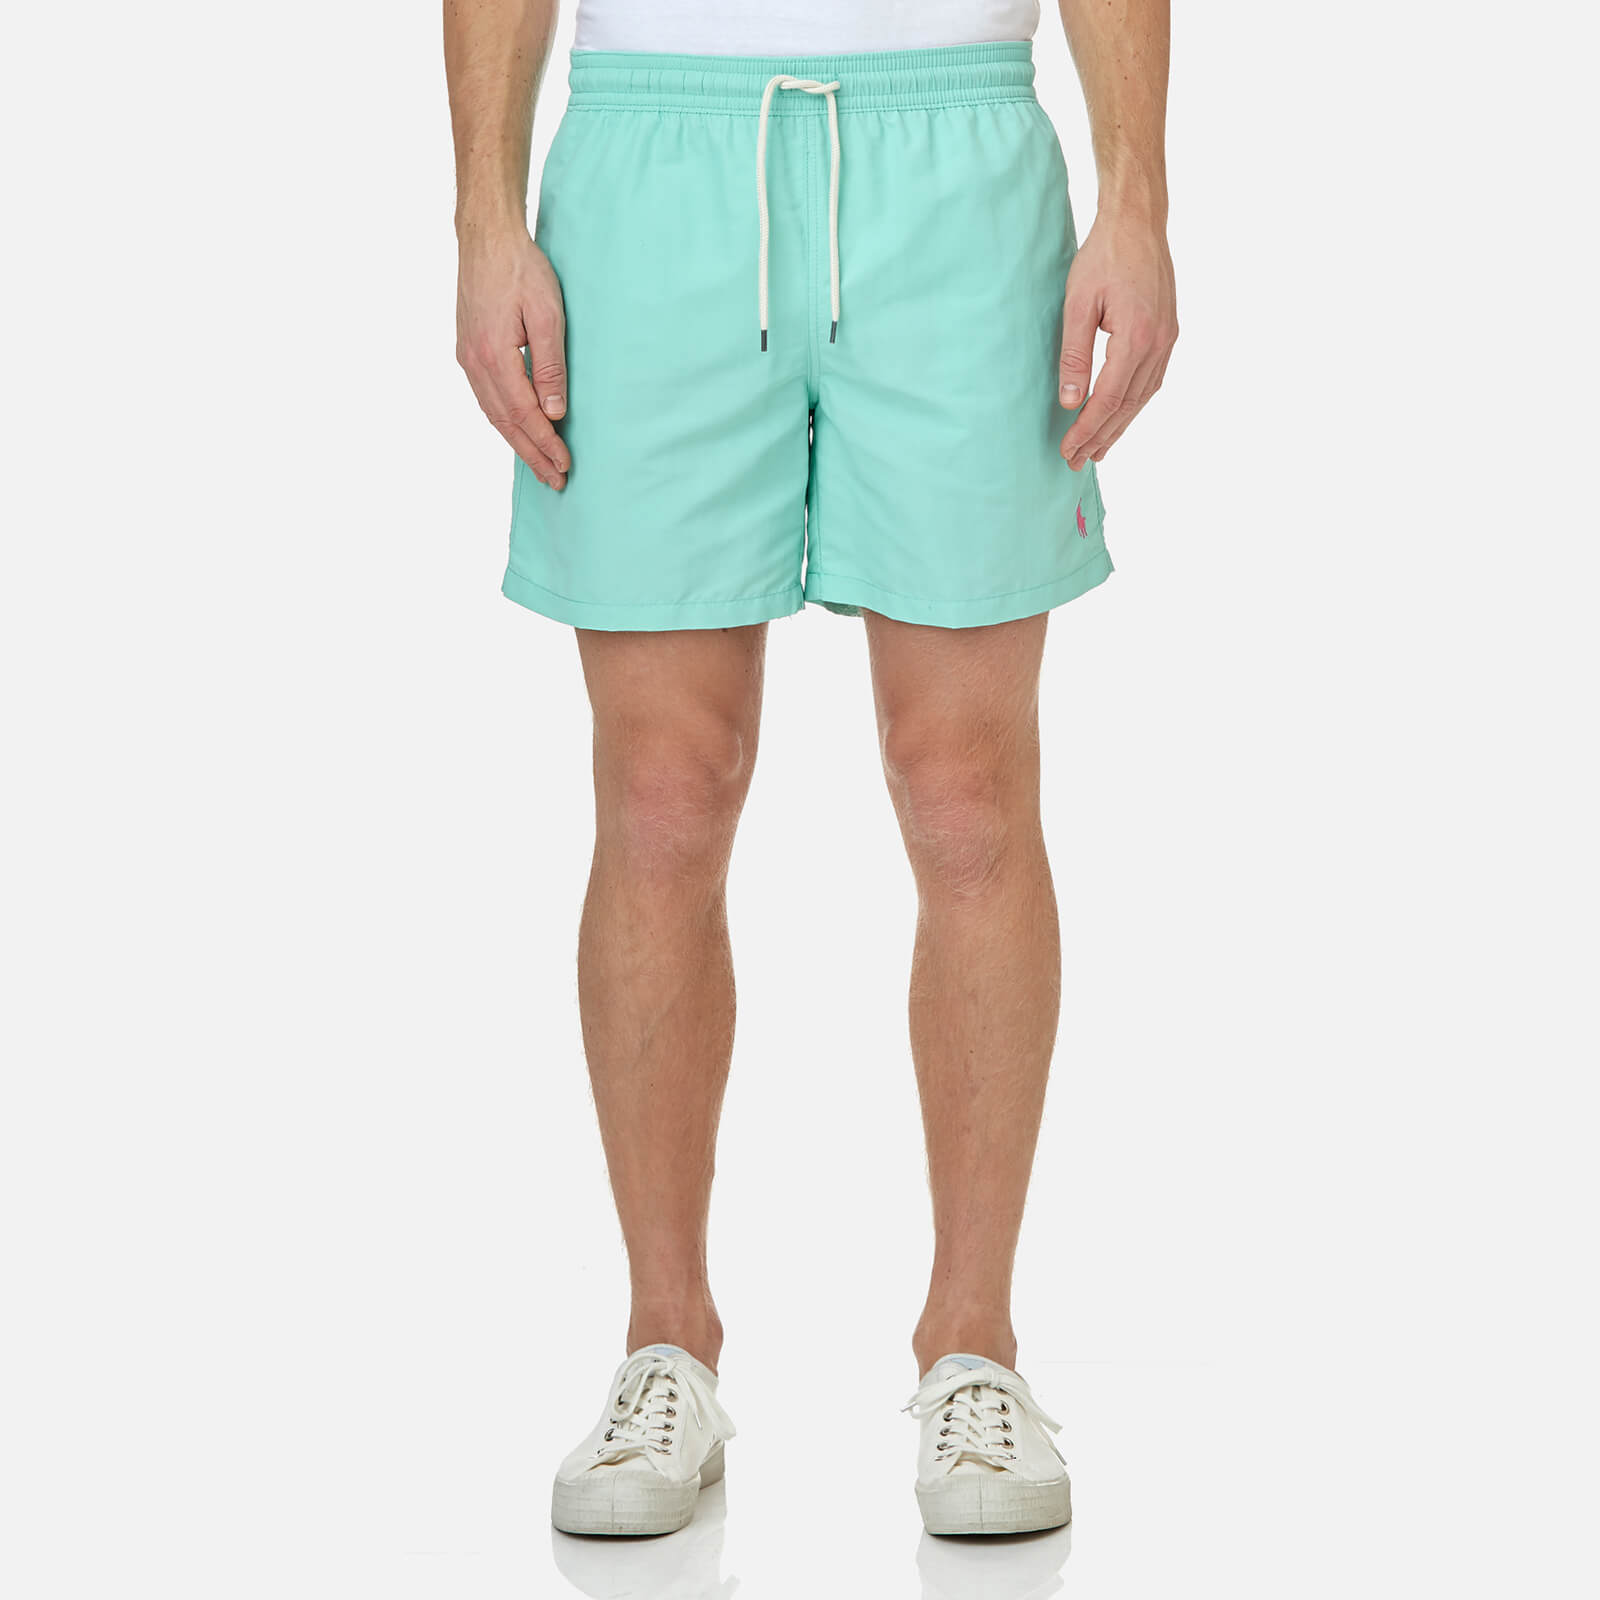 c6f470ee1c Polo Ralph Lauren Men's Traveler Swim Shorts - Bayside Green - Free UK  Delivery over £50